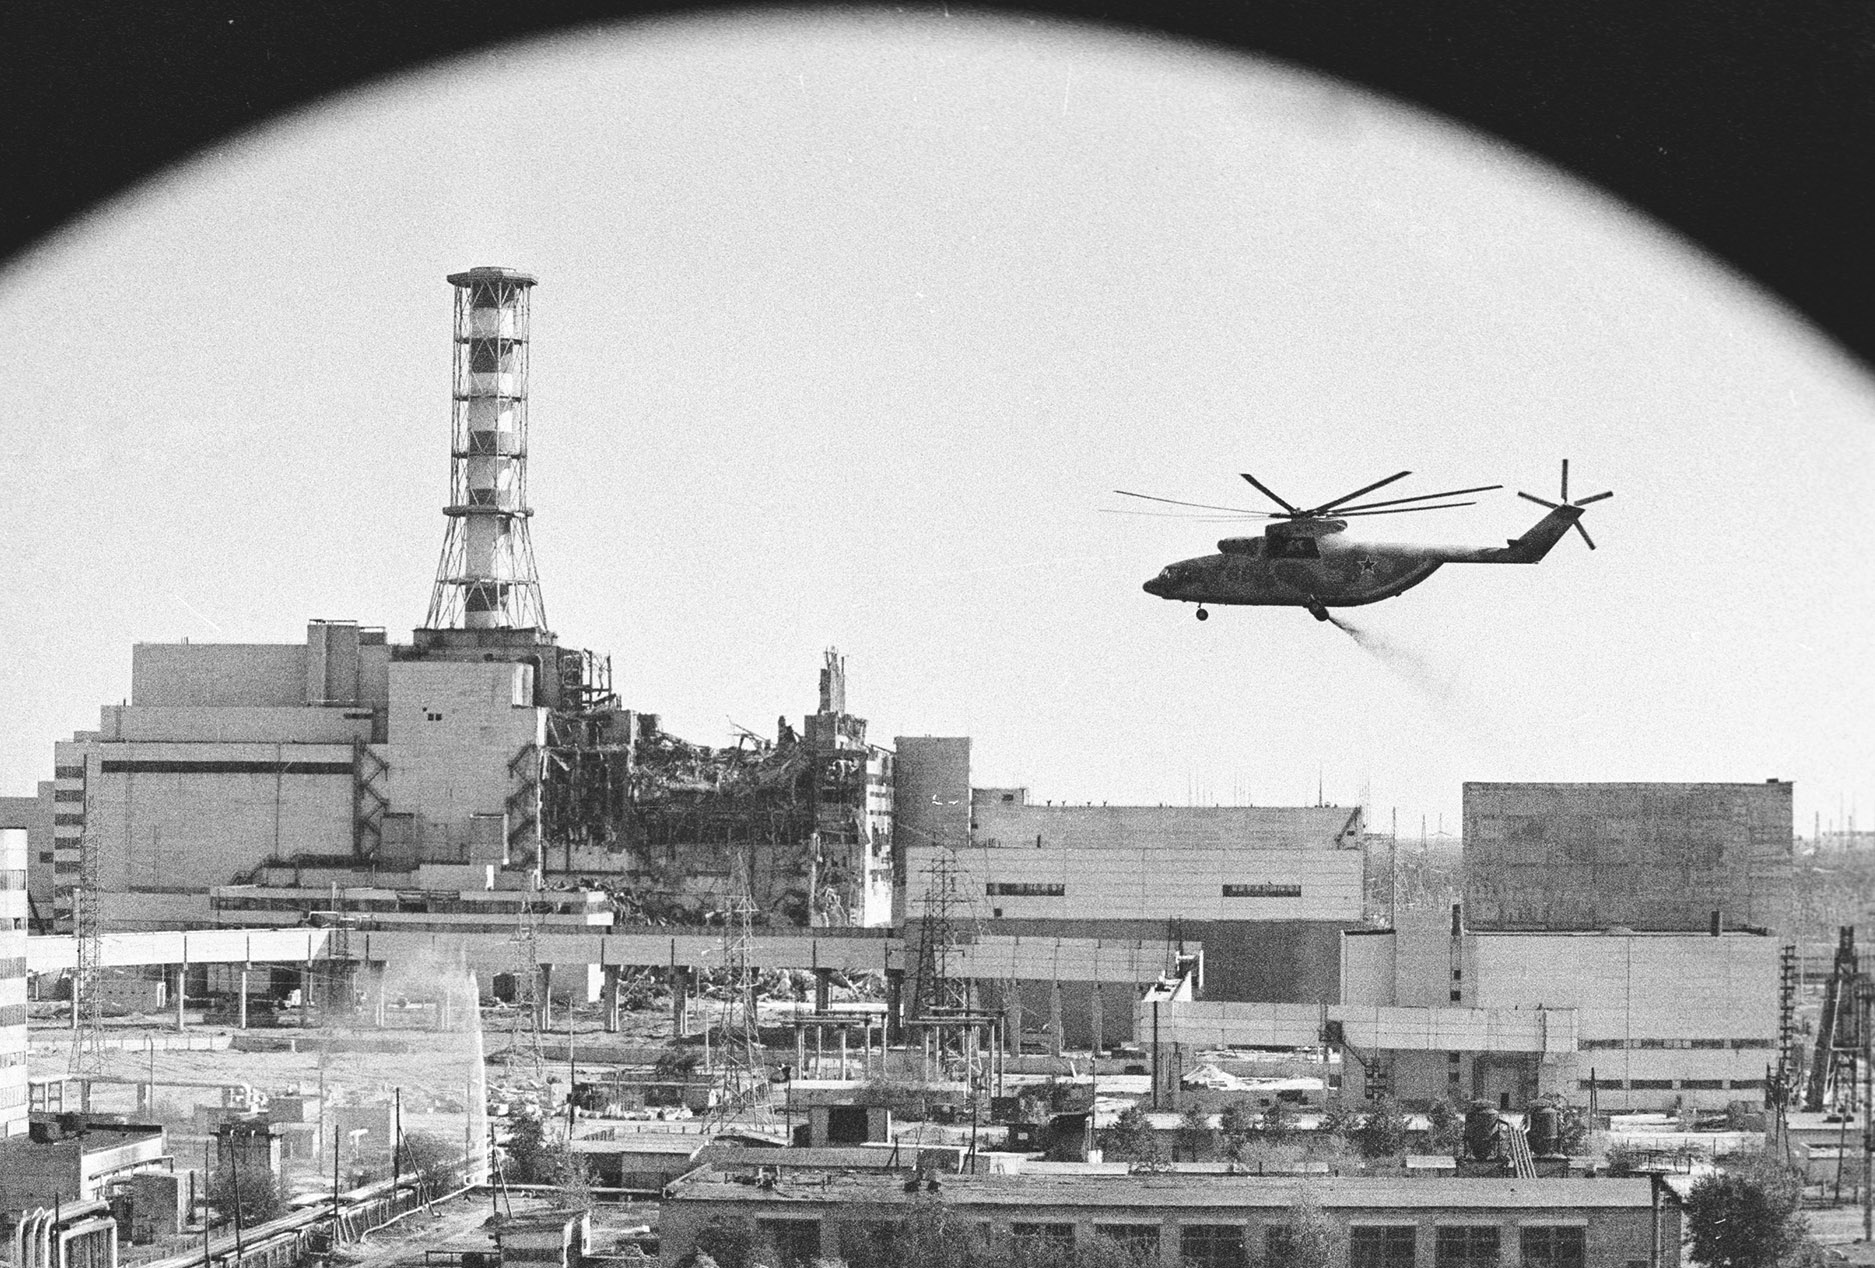 A helicopter 'bomb run' on the damaged Chernobyl reactor (visible in the background). During the first days after the explosion, helicopter pilots dropped thousands of tons of sand, clay, boron and lead into the opening created in the roof of the reactor by the explosion, exposing themselves to extremely high levels of radiation. May 1986 (Credit: Igor Kostin/Sputnik Images)